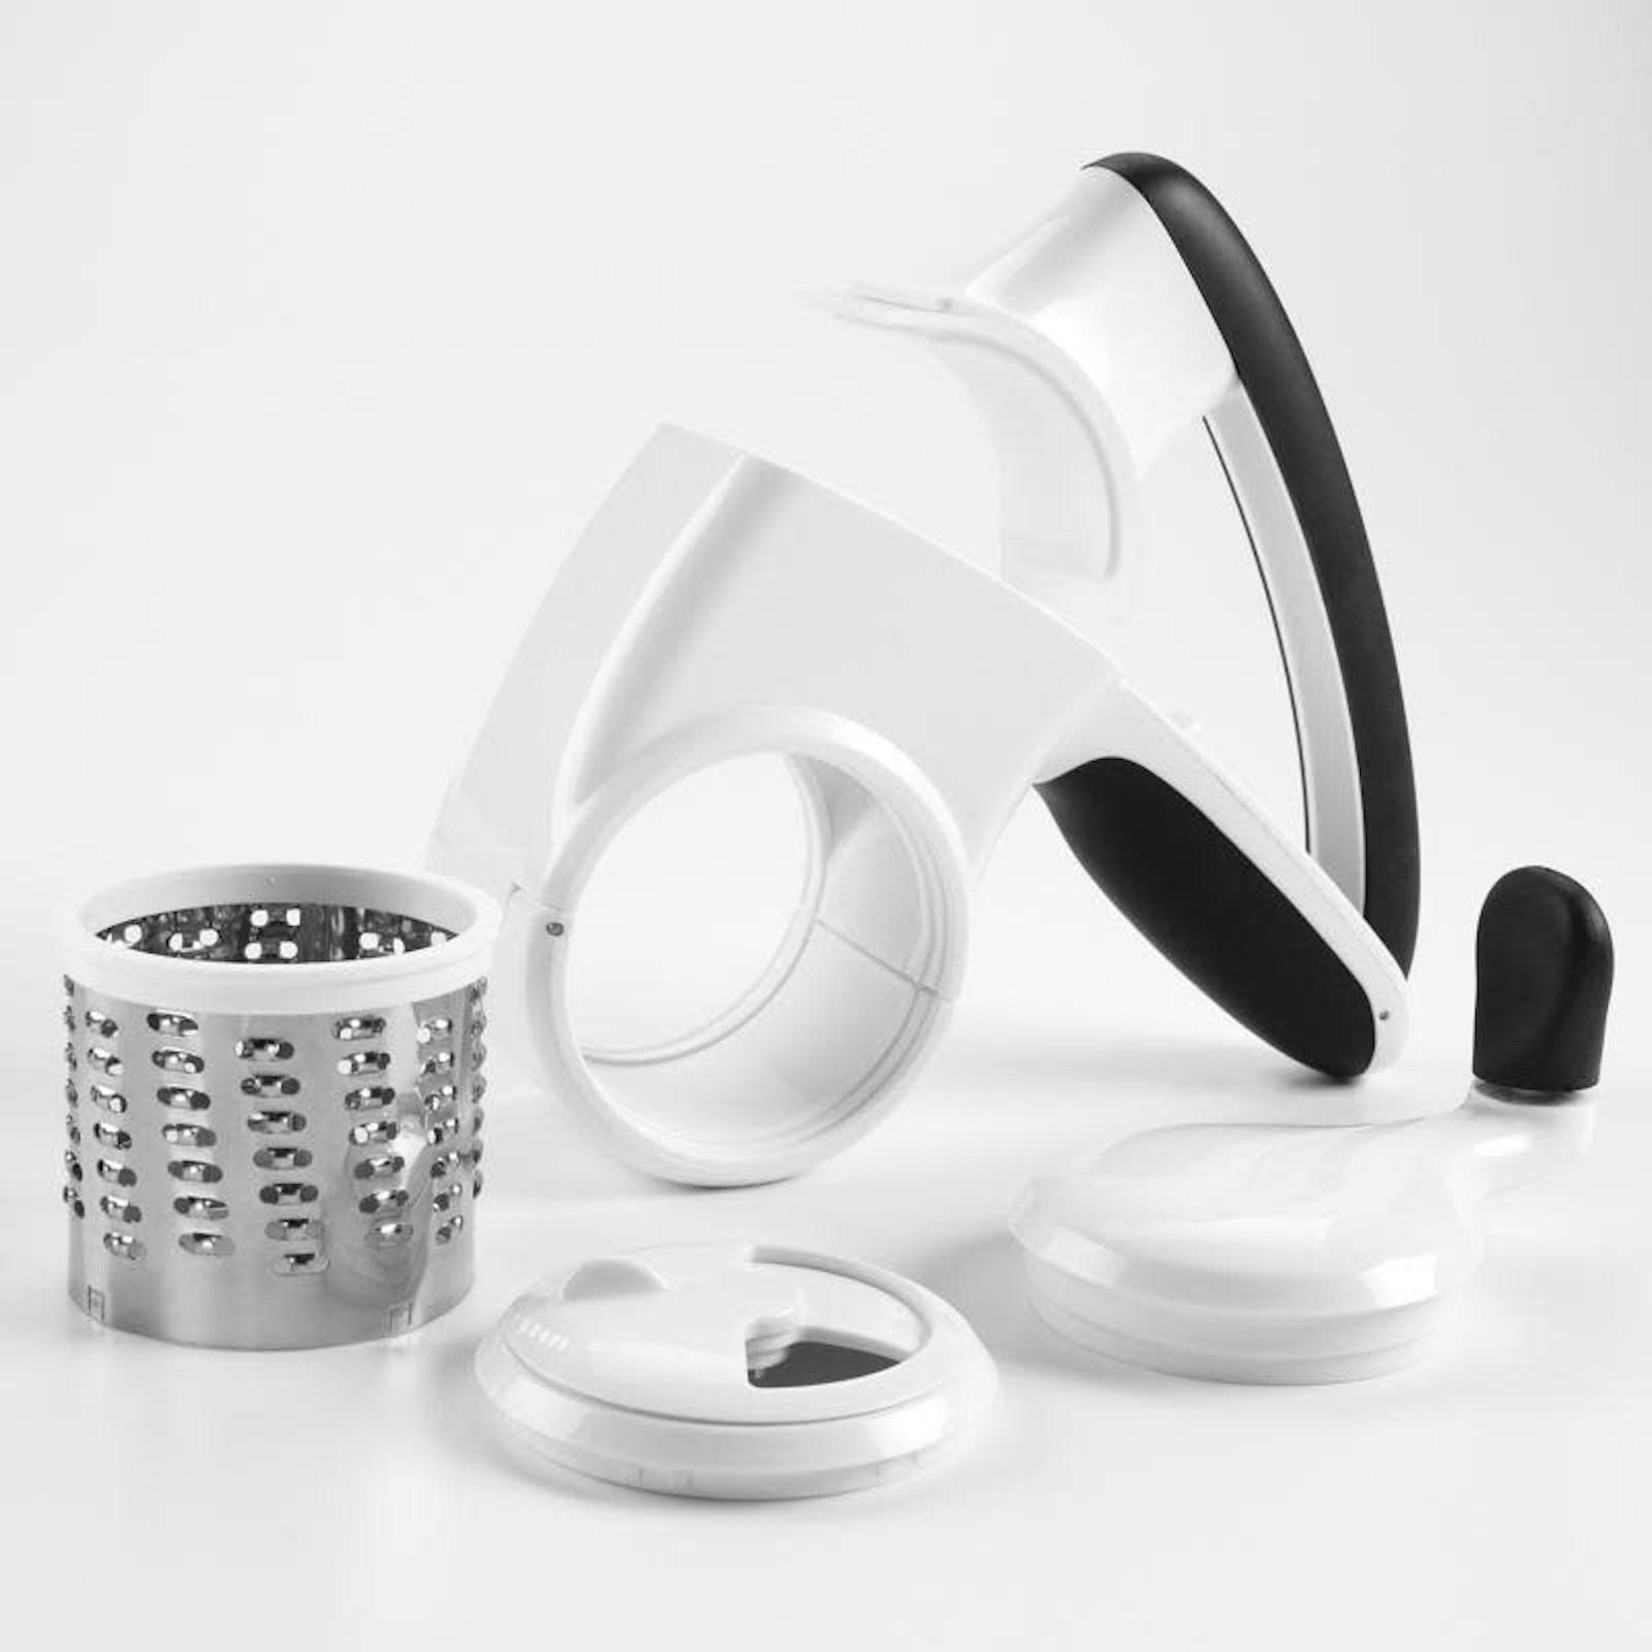 OXO Rotary Cheese Grater